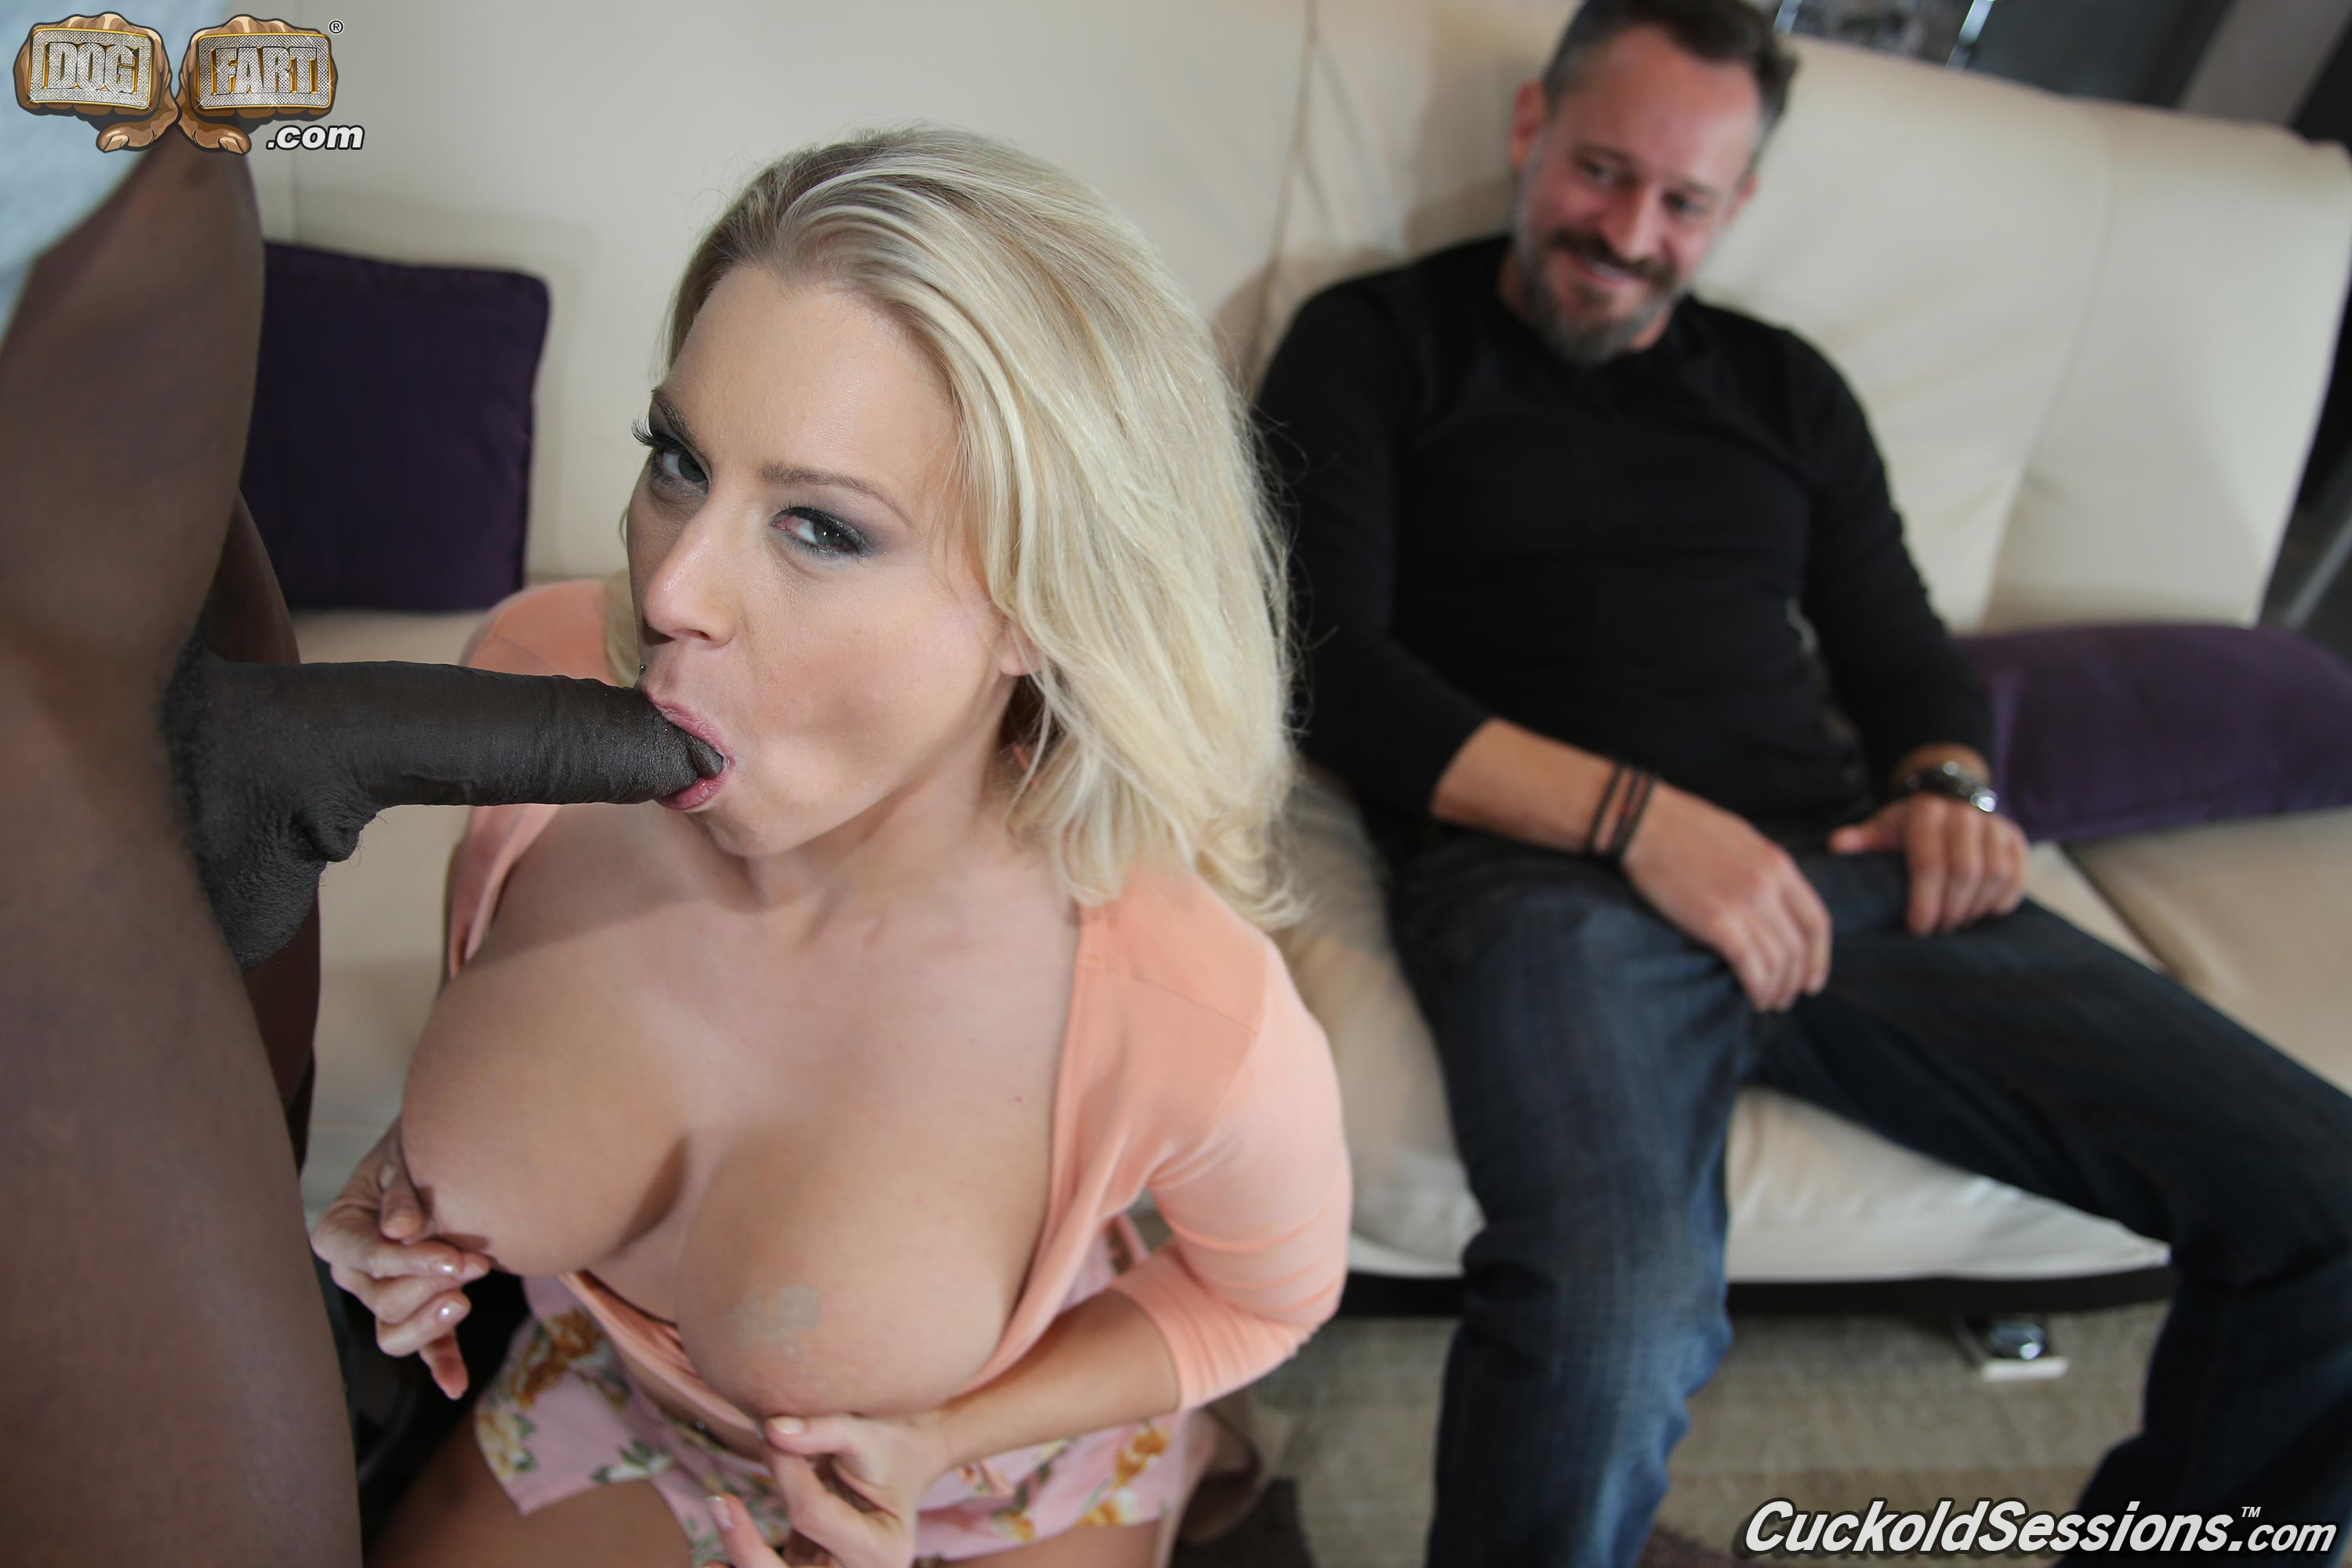 Katie Morgan - Cuckold Sessions Picture 11